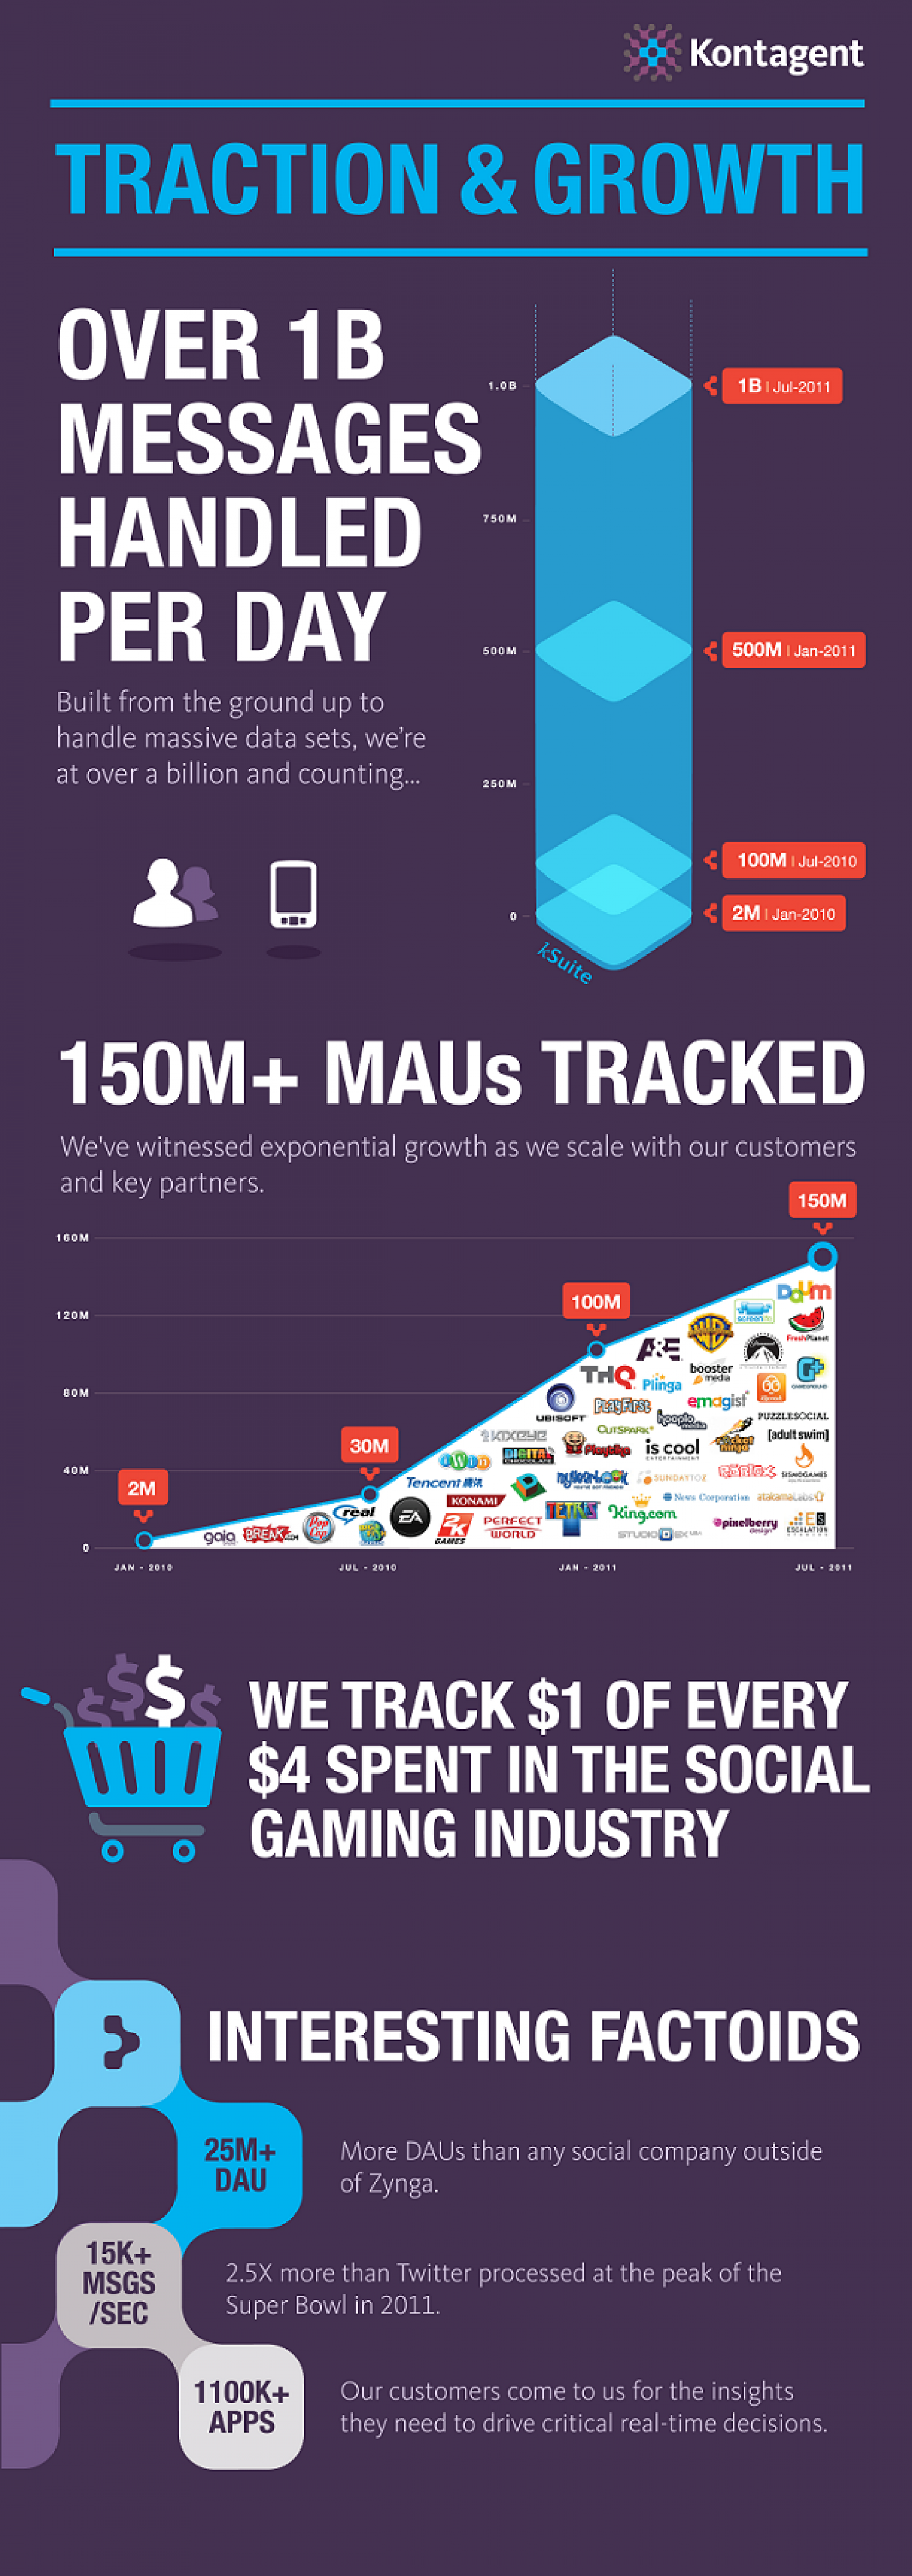 Kontagent: Traction and Growth Infographic